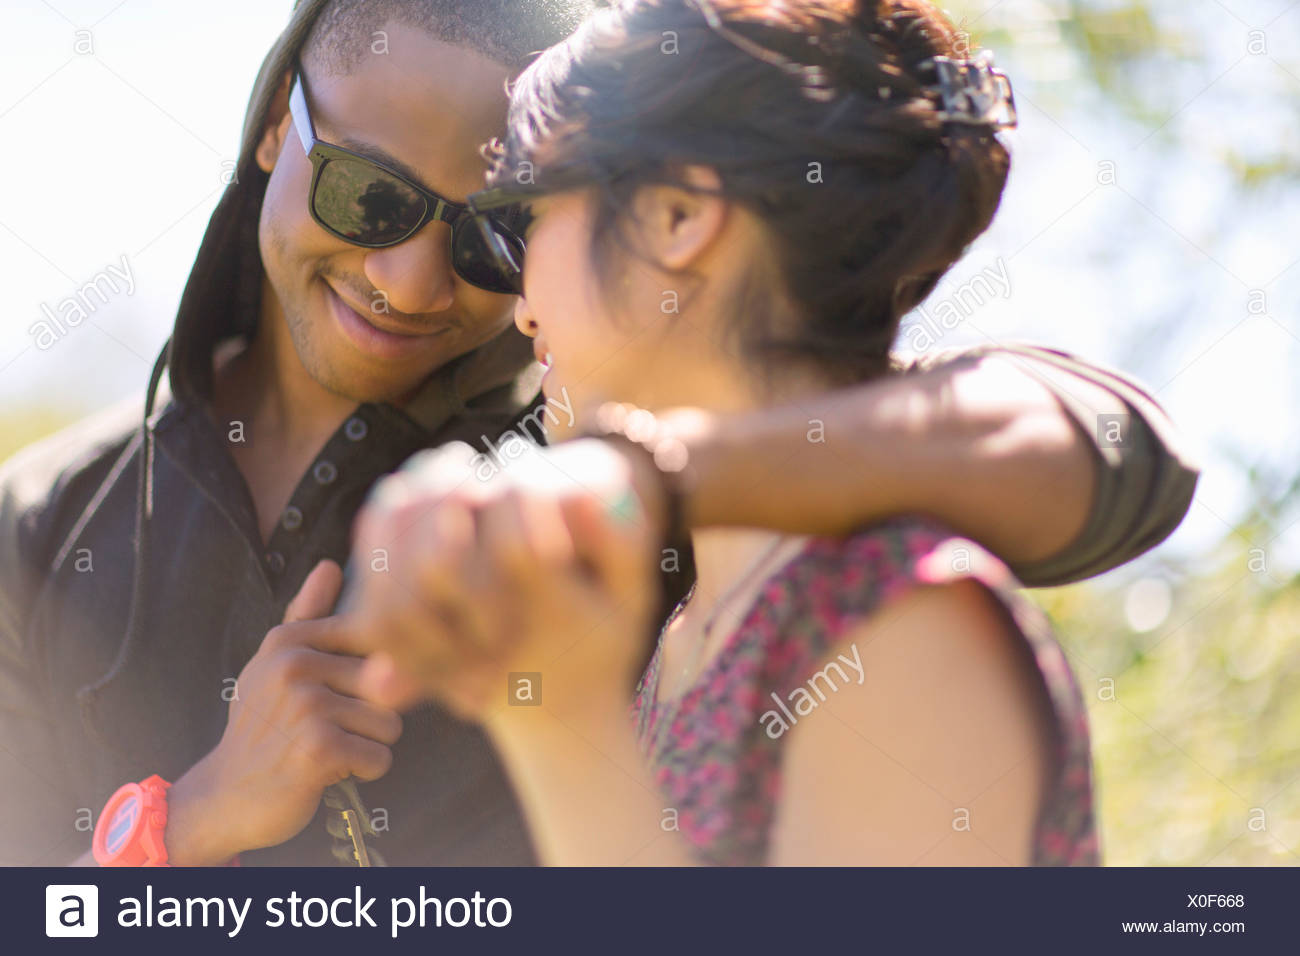 Close up of romantic young couple holding hands - Stock Image